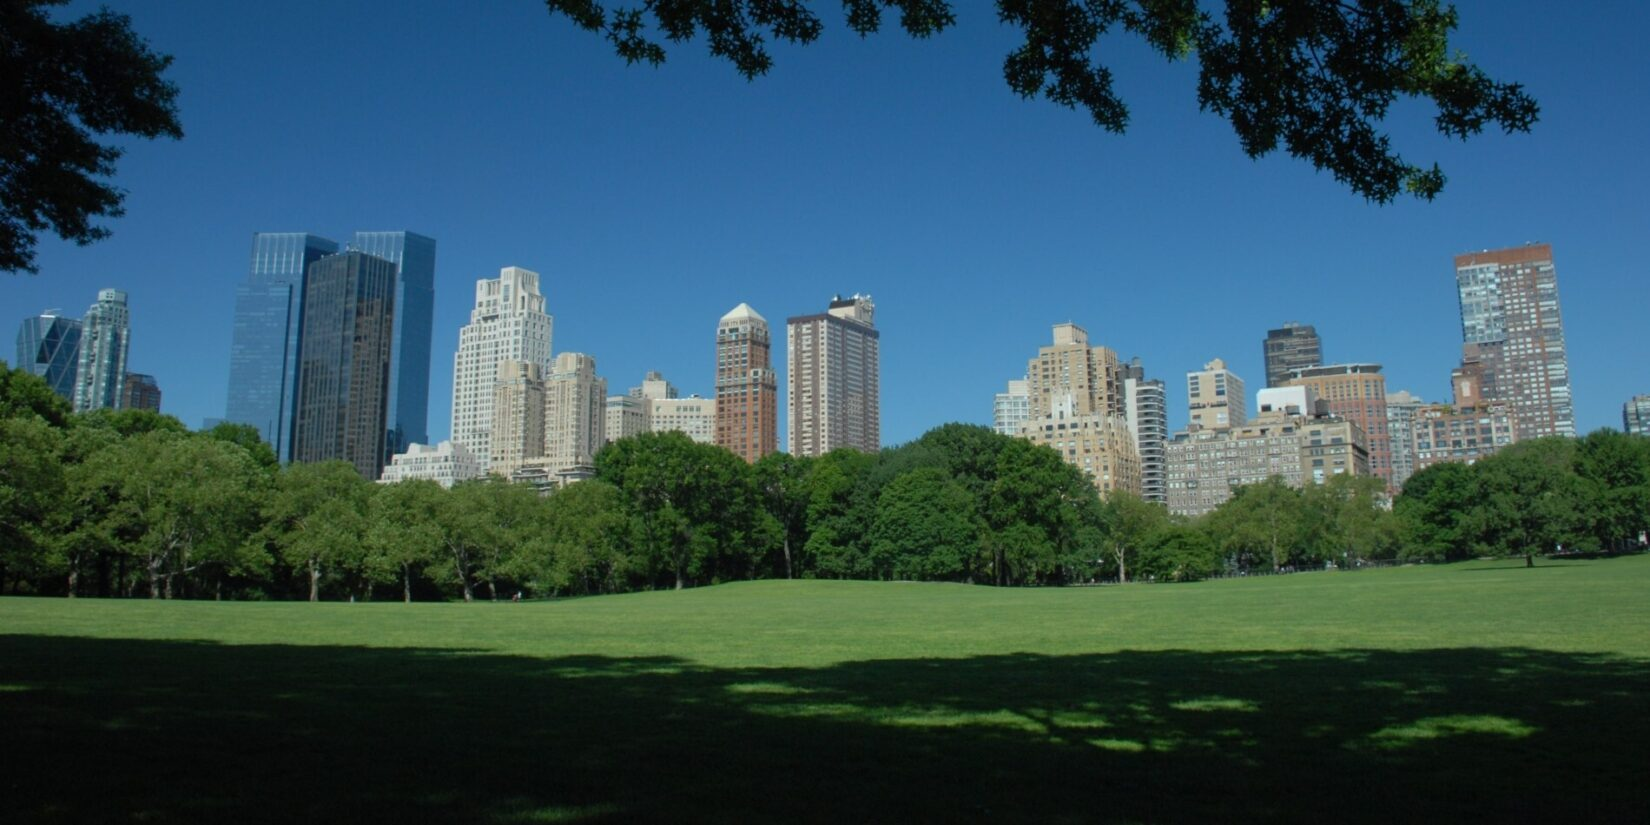 The Sheep Meadow, half cloaked in the shade of trees, foregrounds the midtown skyline